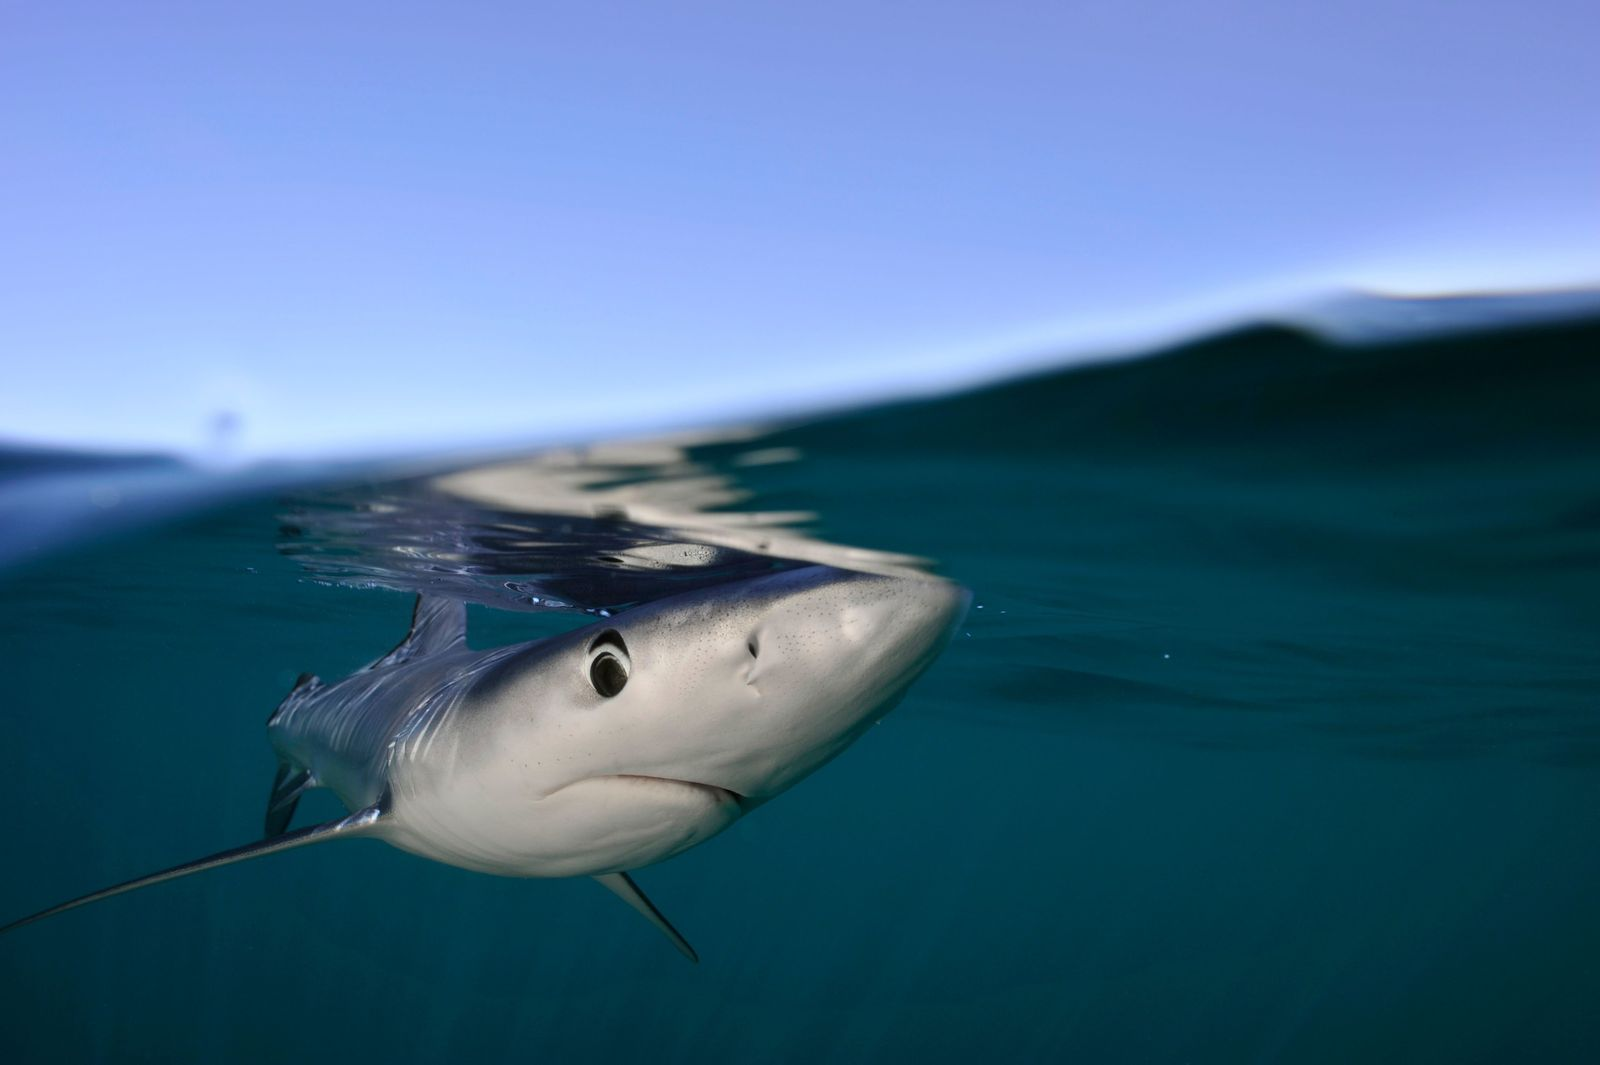 Instantly recognisable due to its long snout and distinctive visage, the blue shark is an elegant seasonal ...